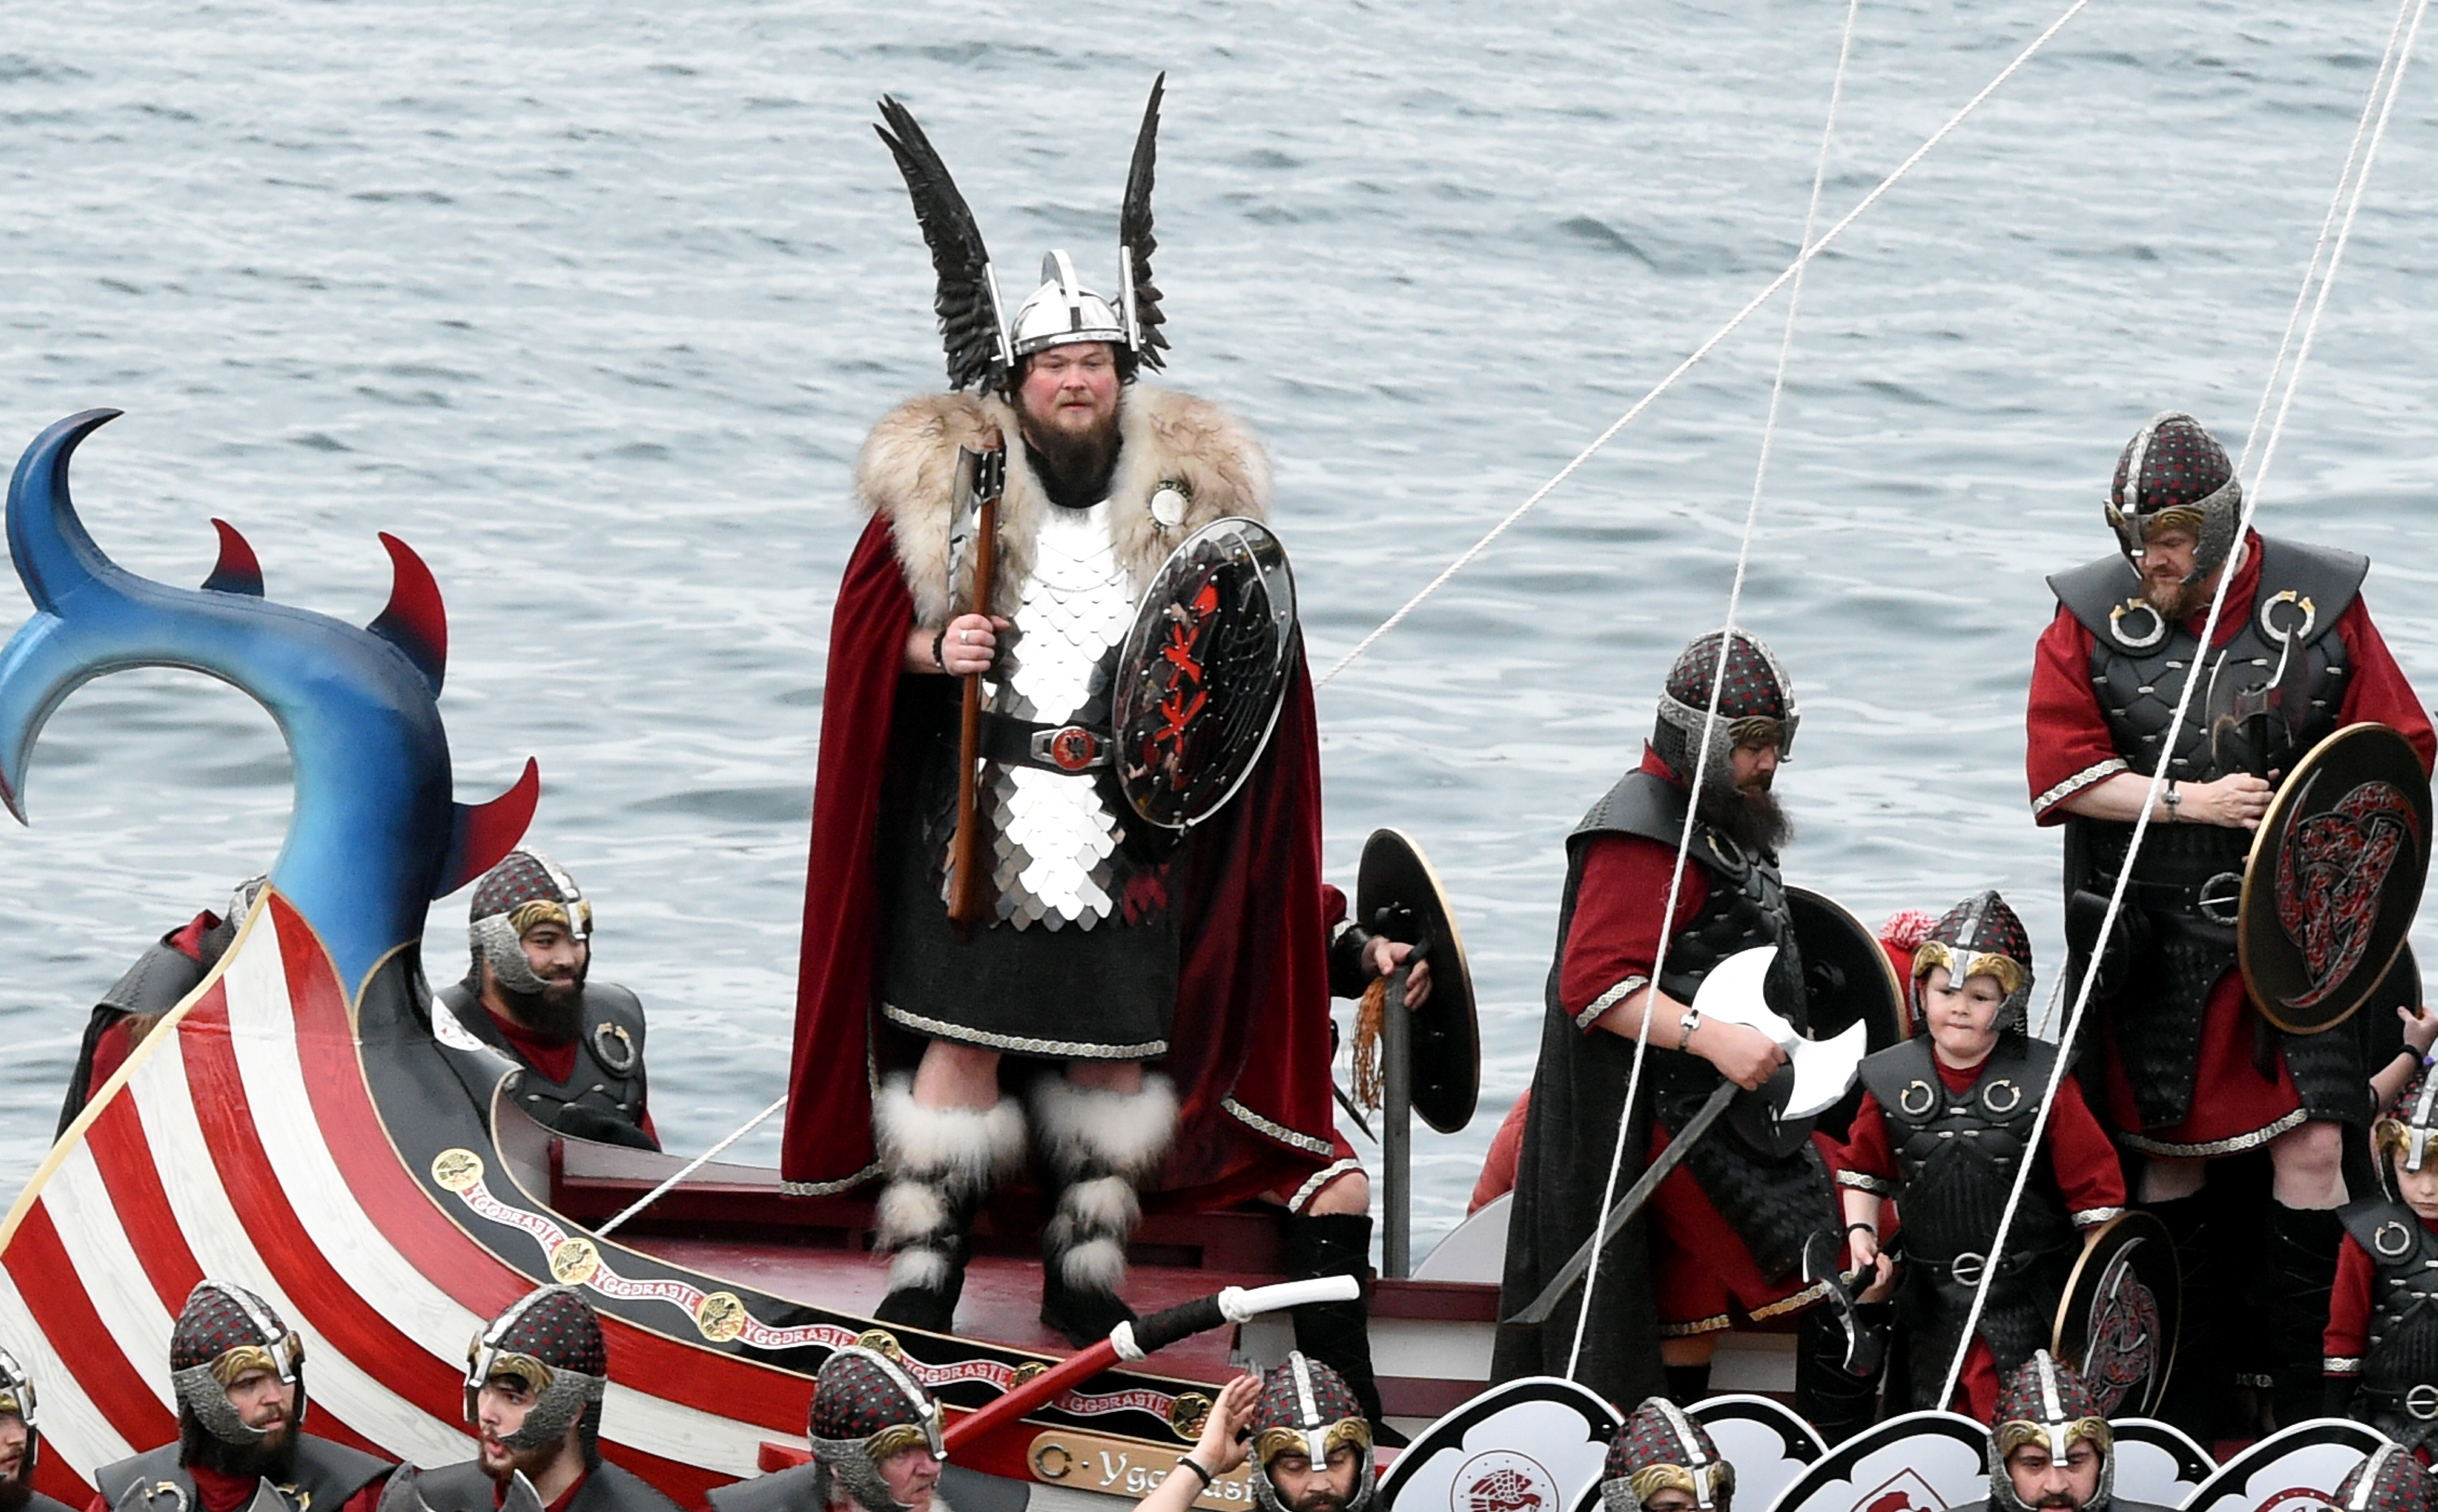 In the picture is Guizer Jarl, Liam Summers and his squad on the boat.  Picture by Jim Irvine